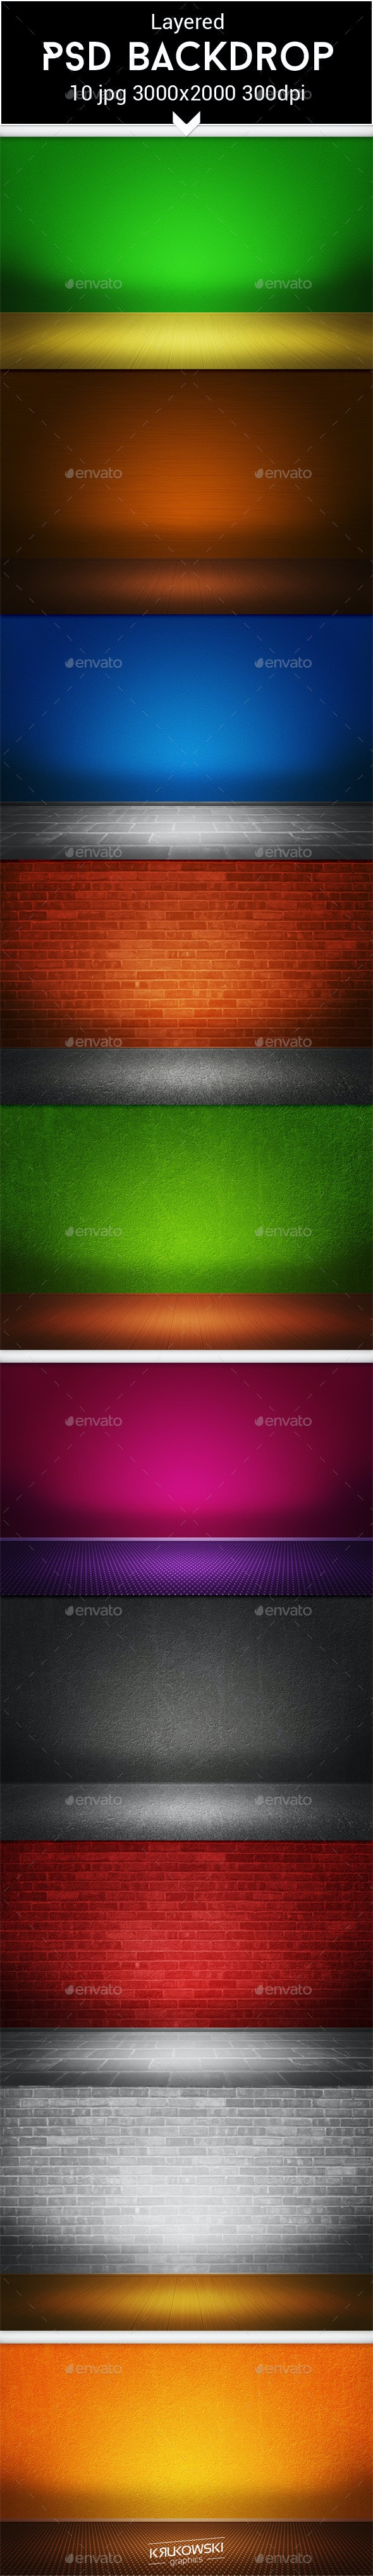 Room PSD Backdrop - 3D Backgrounds